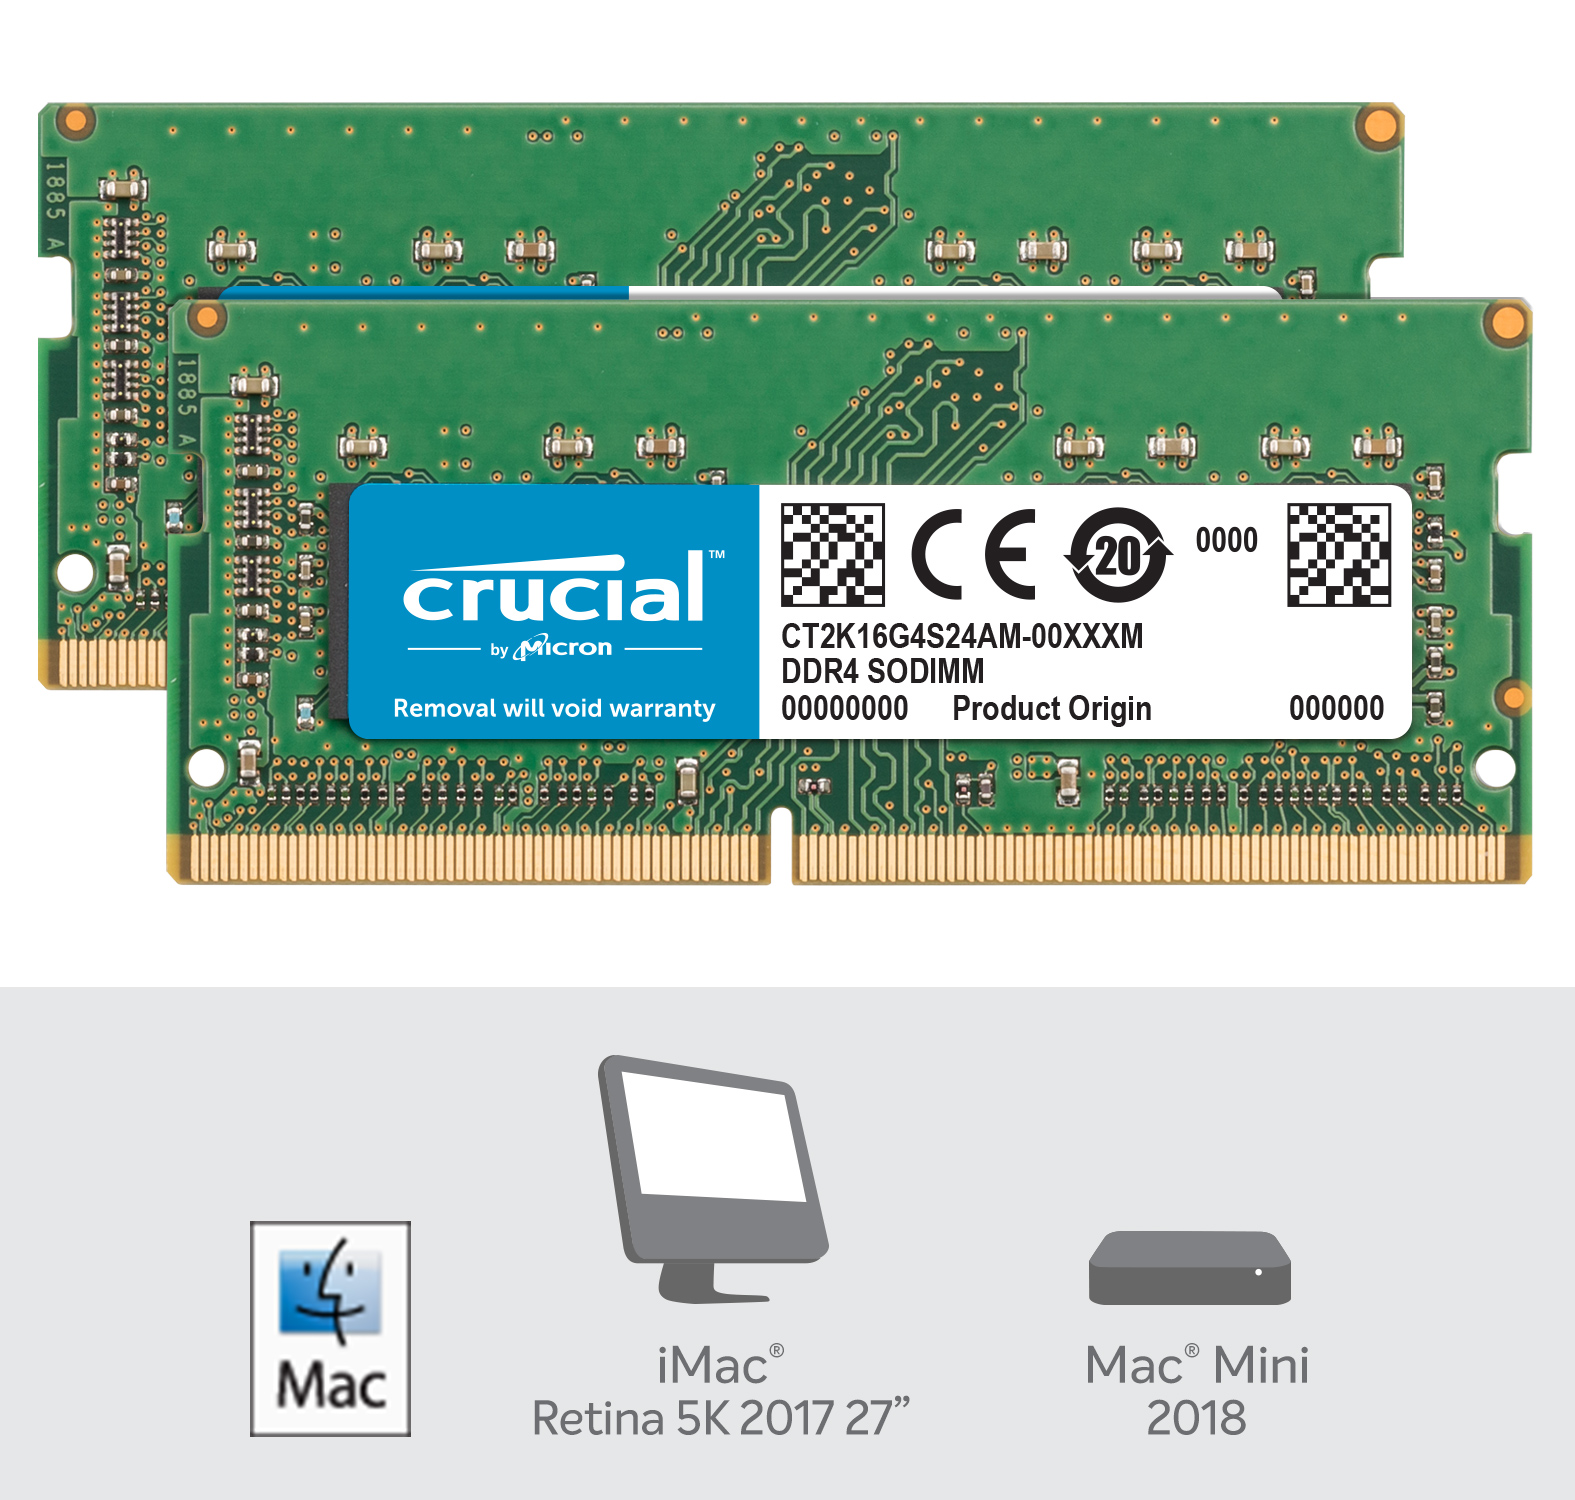 Crucial 32GB Kit (2 x 16GB) DDR4-2400 SODIMM Memory for Mac- view 2